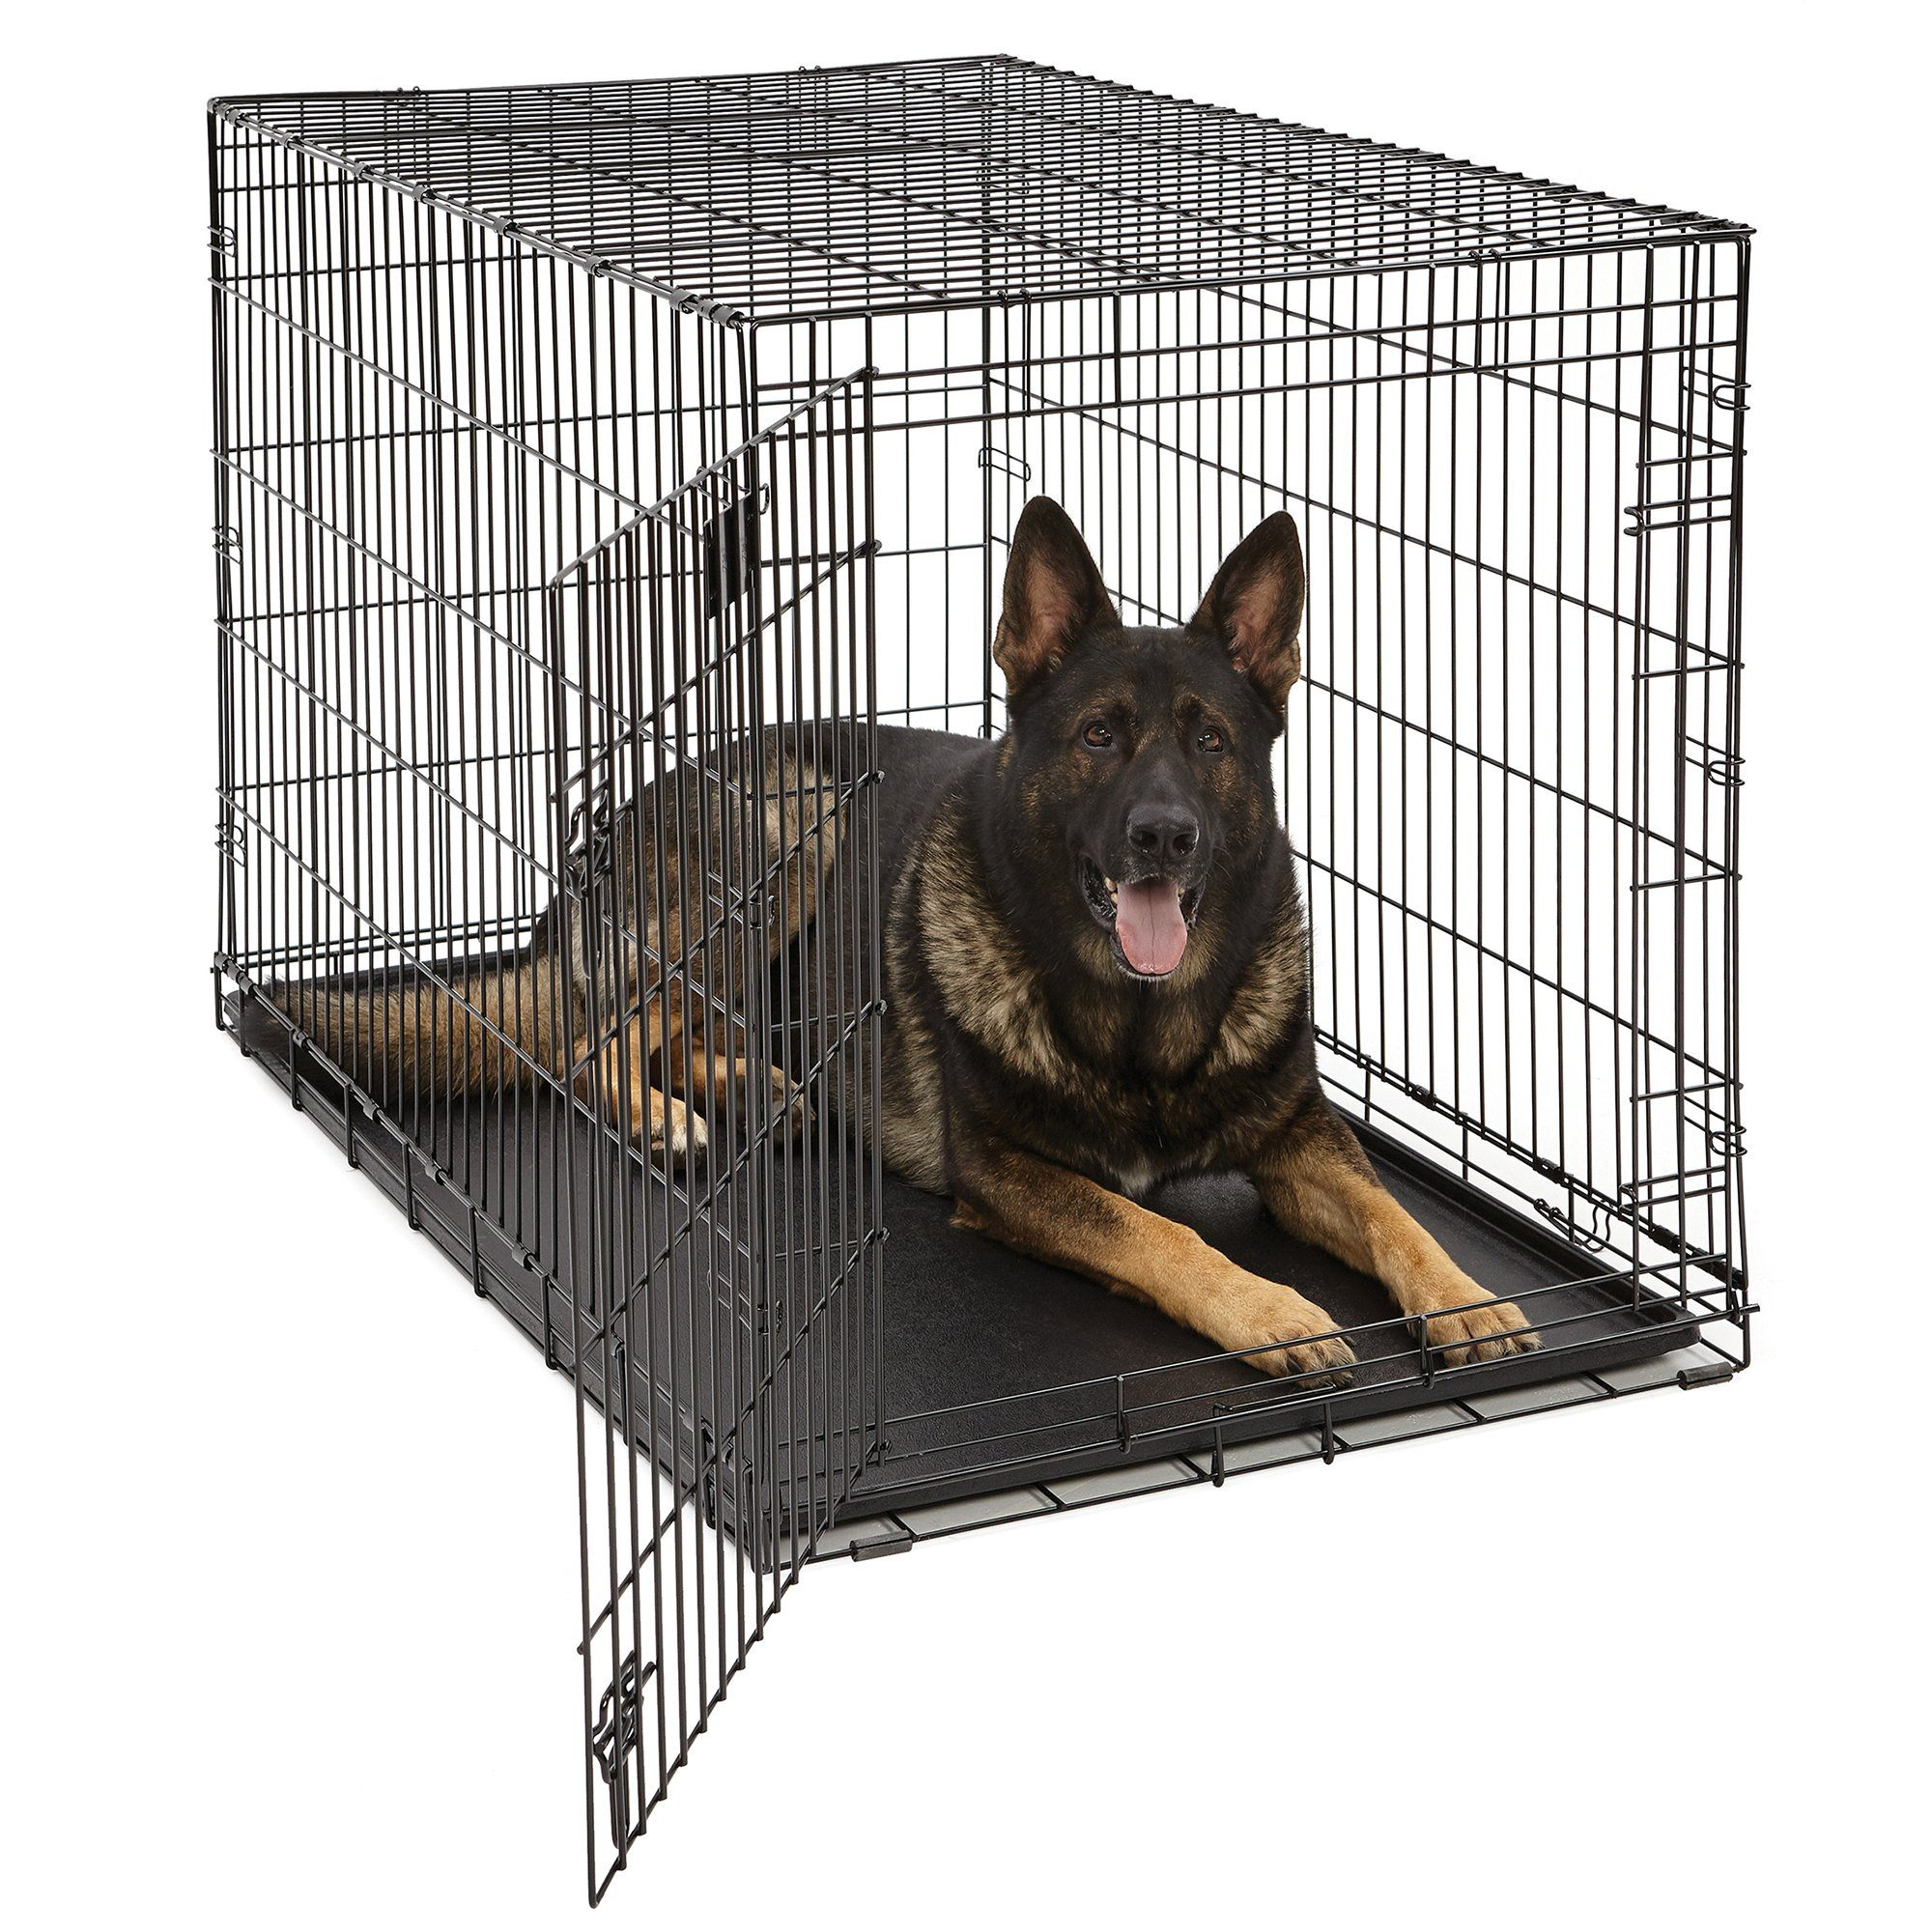 Midwest Lifestages Fold Carry Crate For Dogs 48 Xxxl Dog Crate Large Dog Crate Midwest Dog Crates